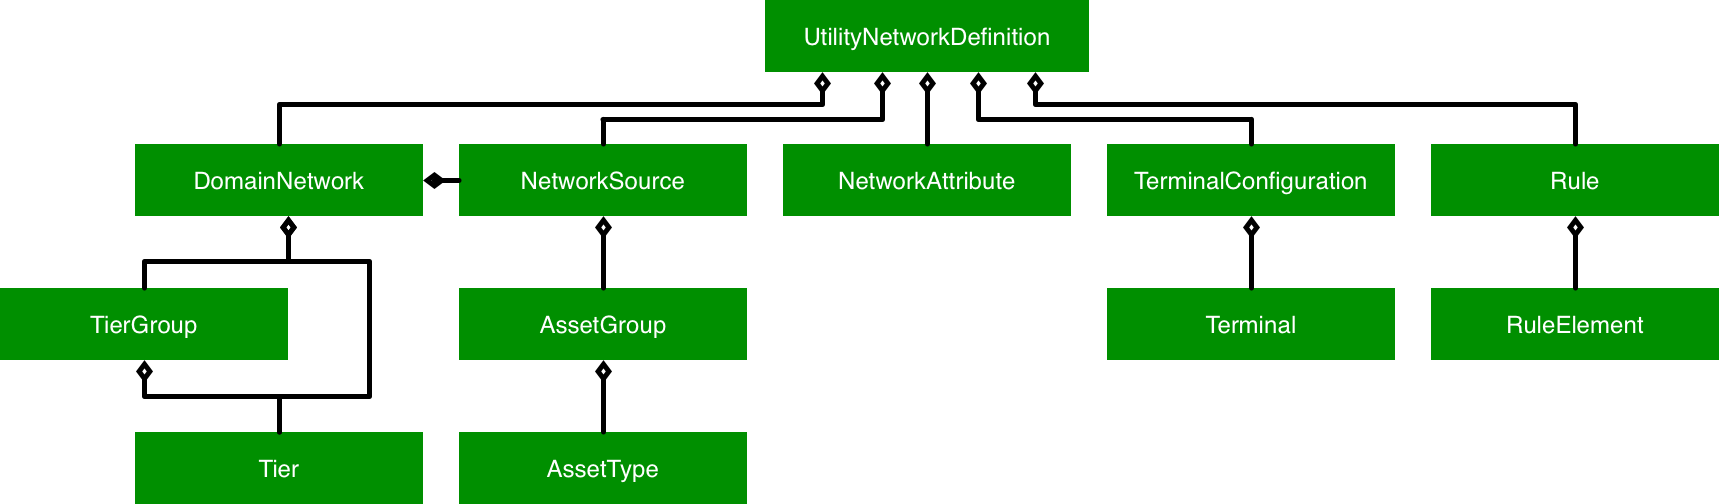 Proconcepts Utility Network Esri Arcgis Pro Sdk Wiki Github Double Sink Plumbing Diagram Group Picture Image By Tag The